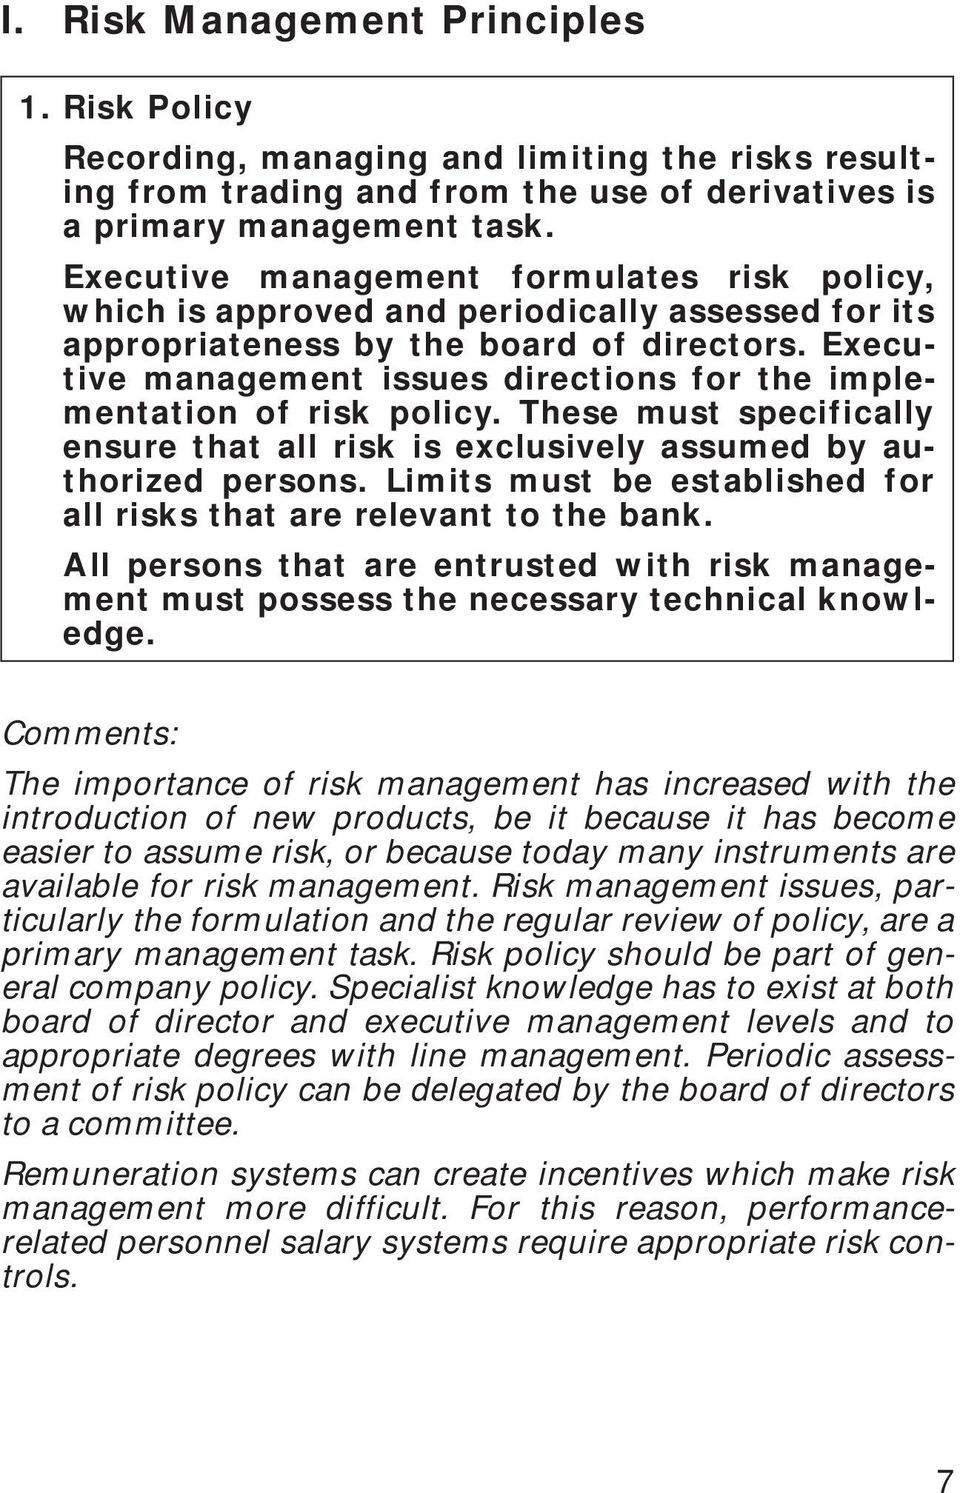 Executive management issues directions for the implementation of risk policy. These must specifically ensure that all risk is exclusively assumed by authorized persons.